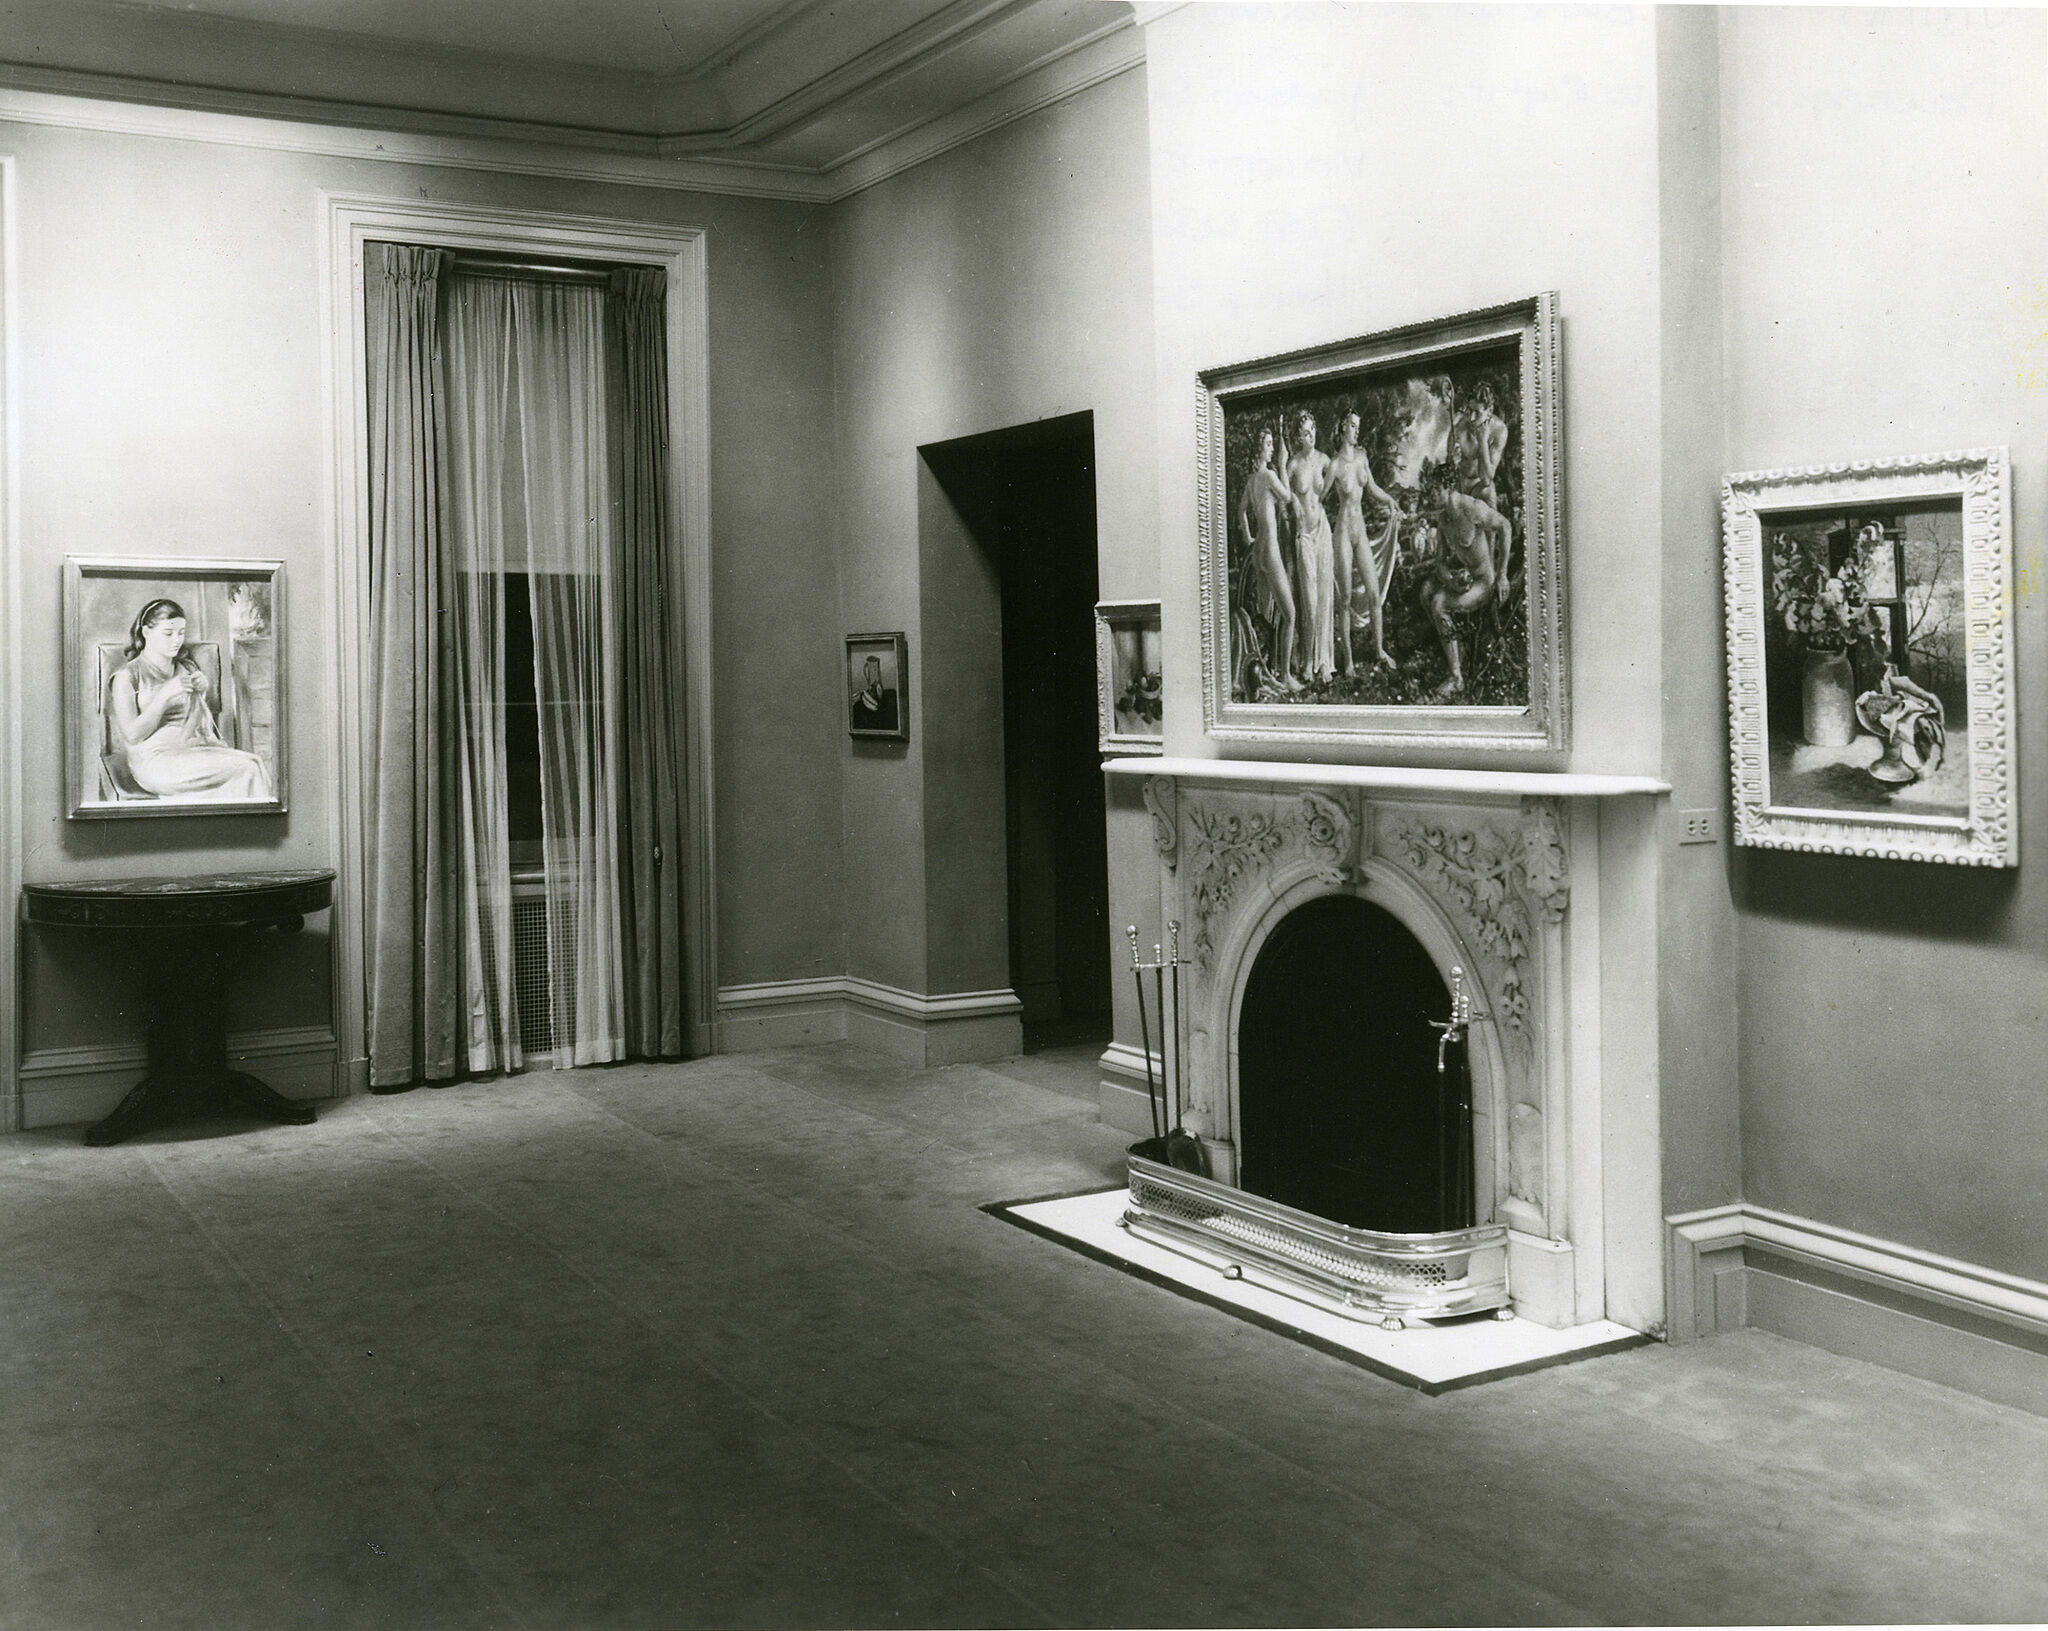 Several paintings hang on wall in a room with a fireplace